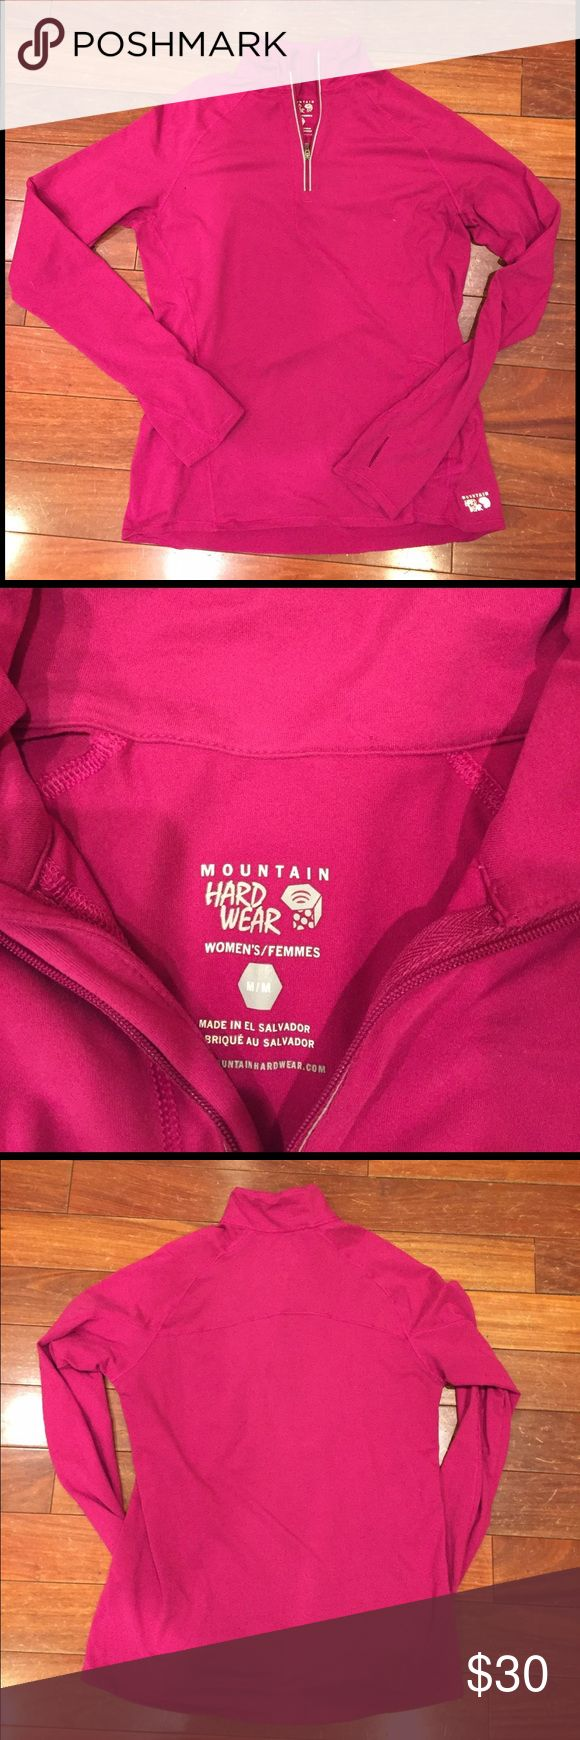 NWOT Mountain Hard Wear lightweight running top New without tags! No rips, holes, stains or pilling. 87% polyester and 13% elastaine beautiful berry color! Mountain Hard Wear Tops Sweatshirts & Hoodies